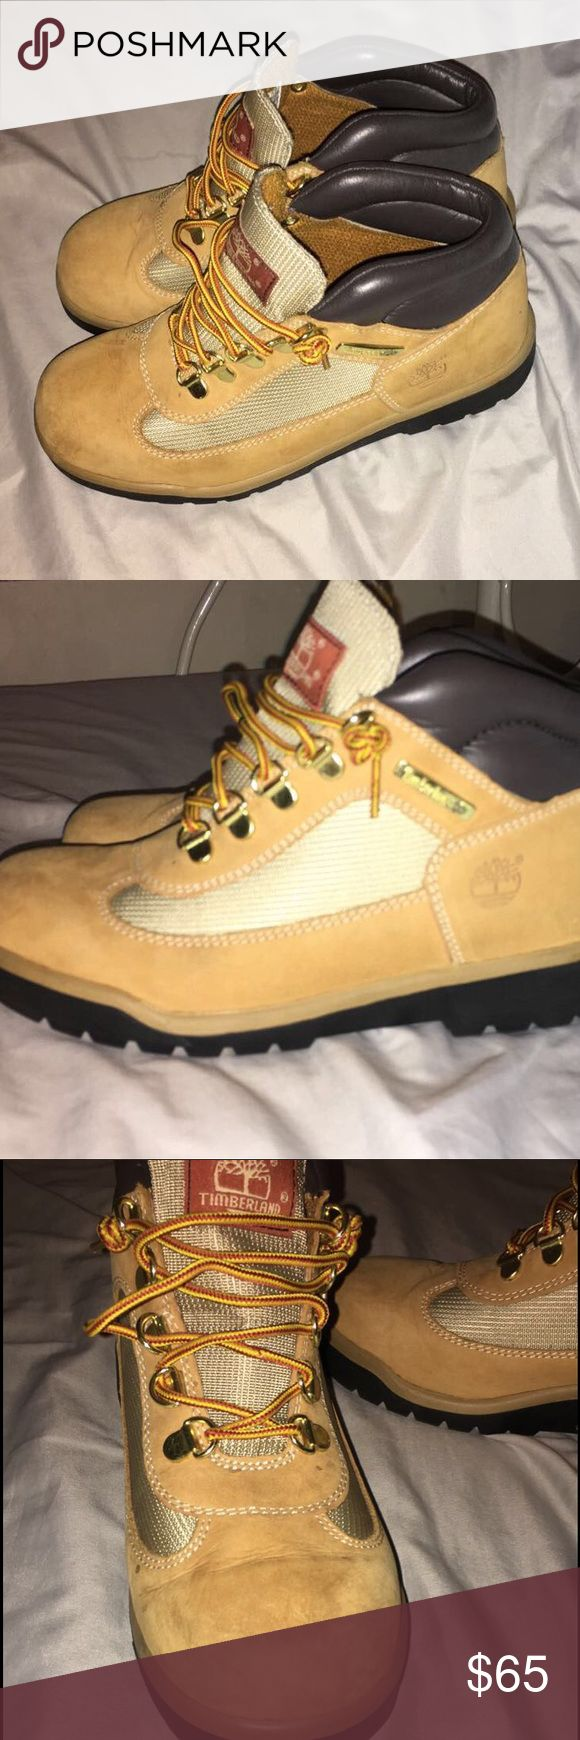 Timberland Field Boots Children's size 4.5, Will fit a Women's size 5. Worn a handful of times. Make me an offer ✨ PAYPAL ONLY. Timberland Shoes Lace Up Boots